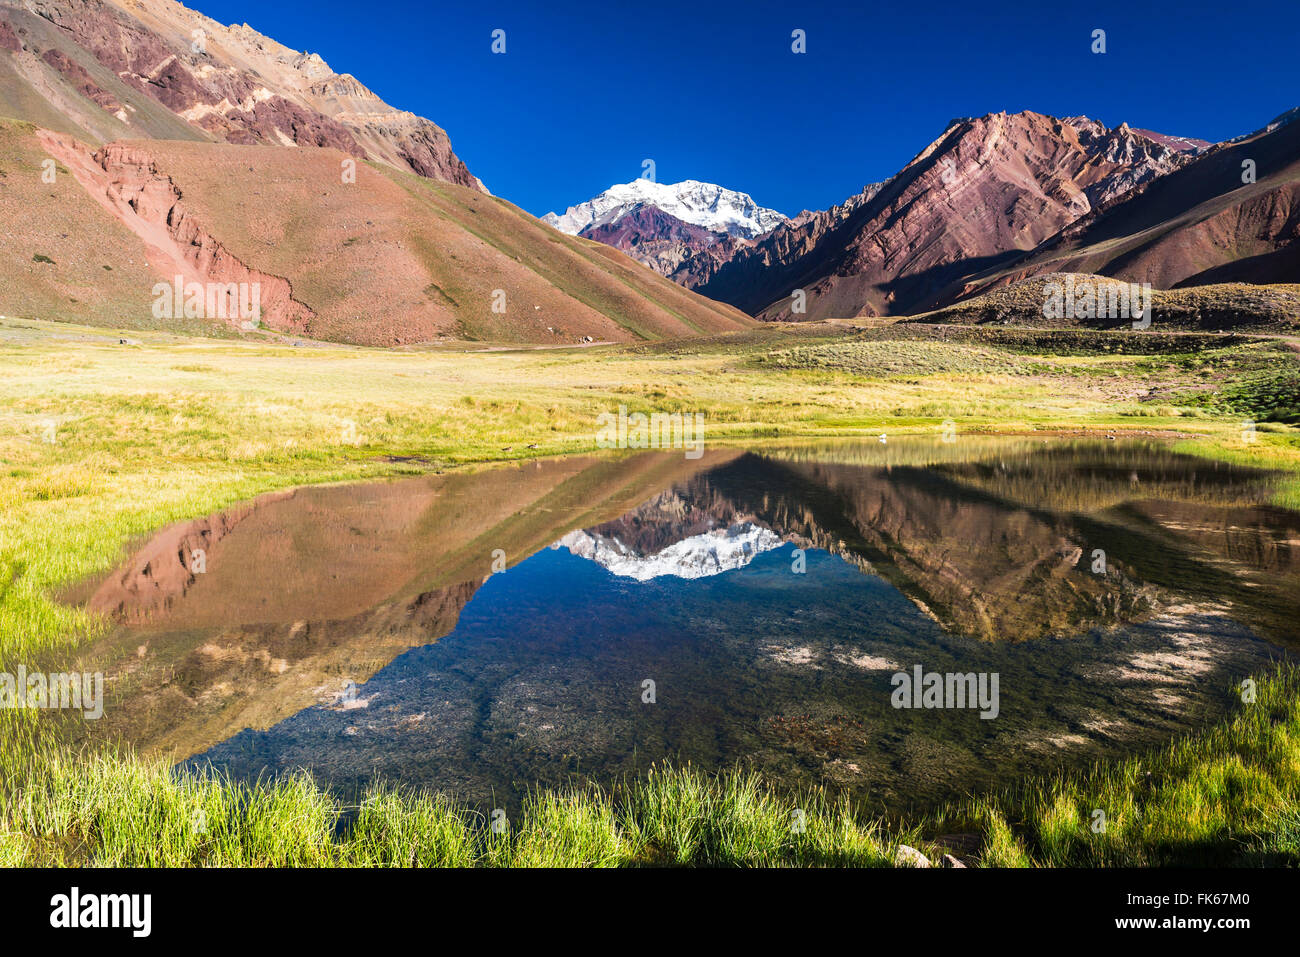 Aconcagua, at 6961m, the highest mountain in the Andes Mountain Range, Aconcagua Provincial Park, Mendoza Province, - Stock Image